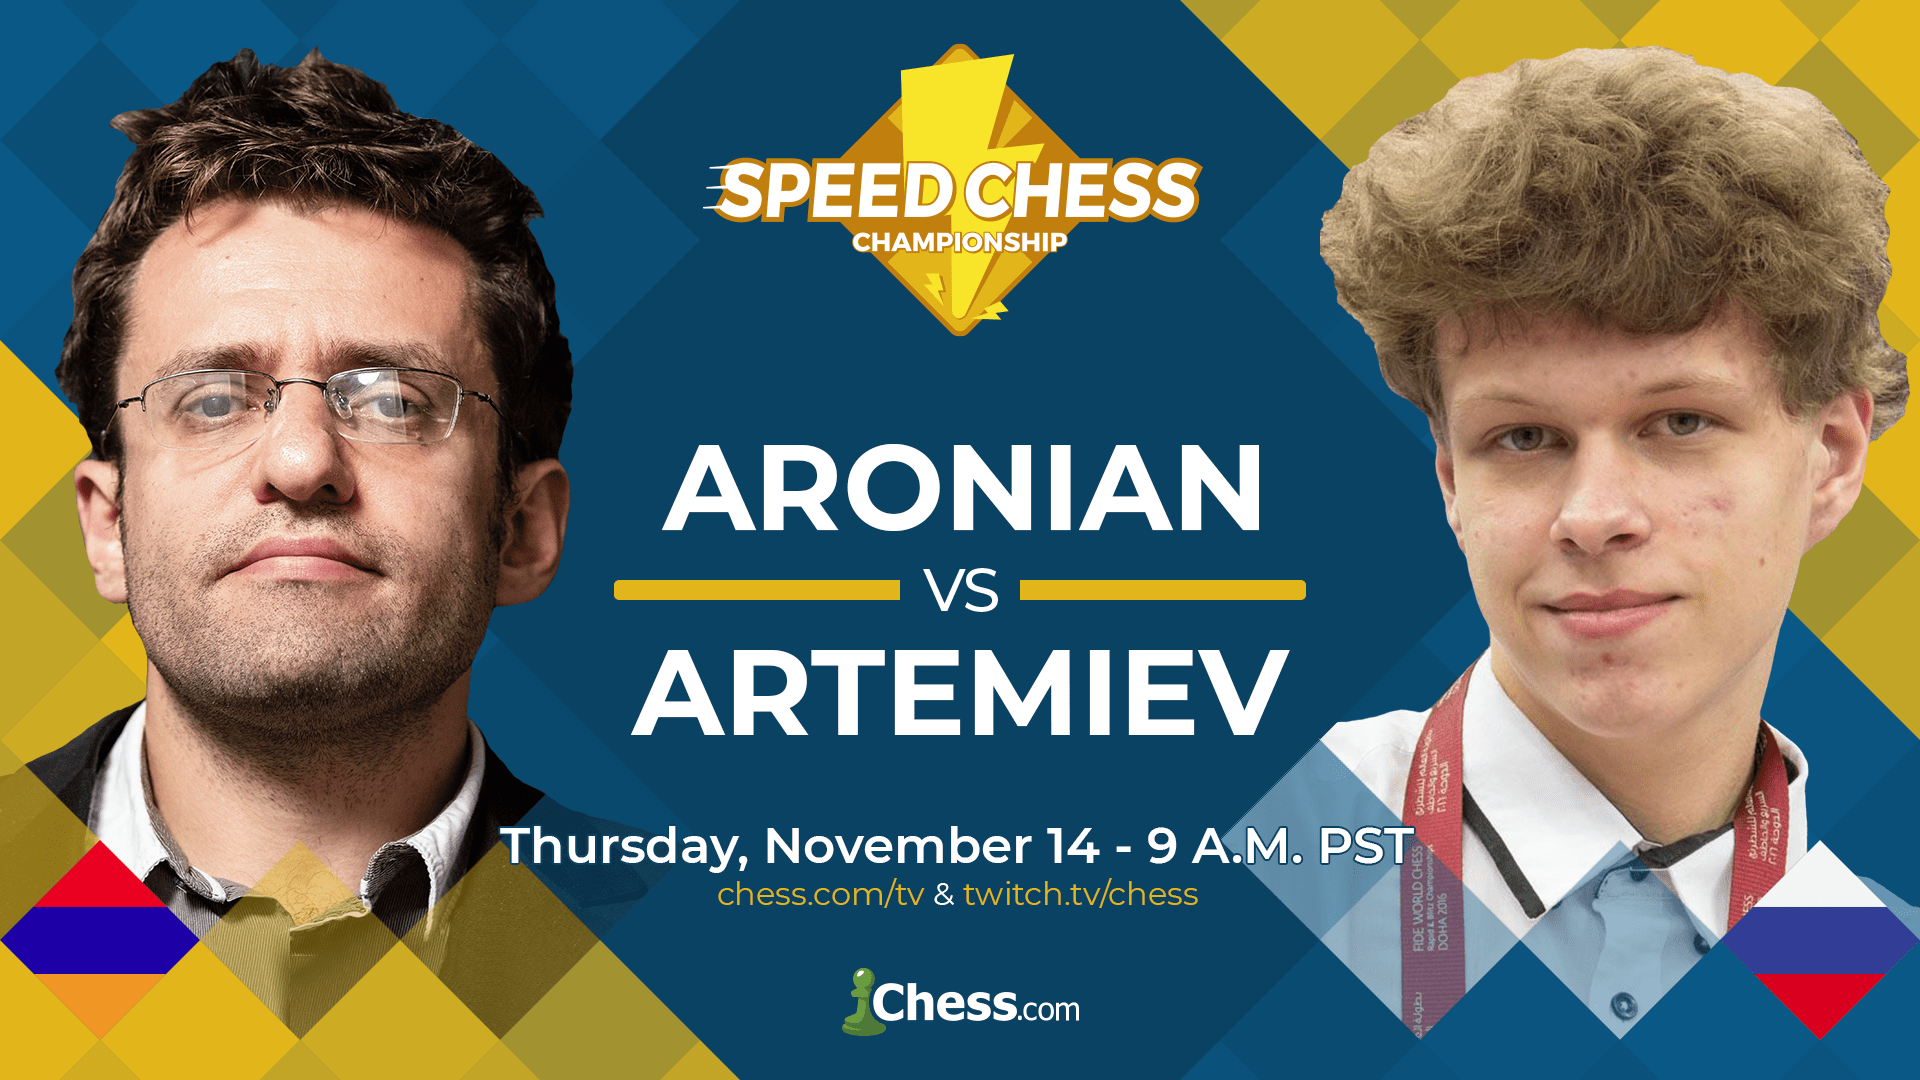 Speed Chess Championship Match Aronian-Artemiev Preview - Chess.com